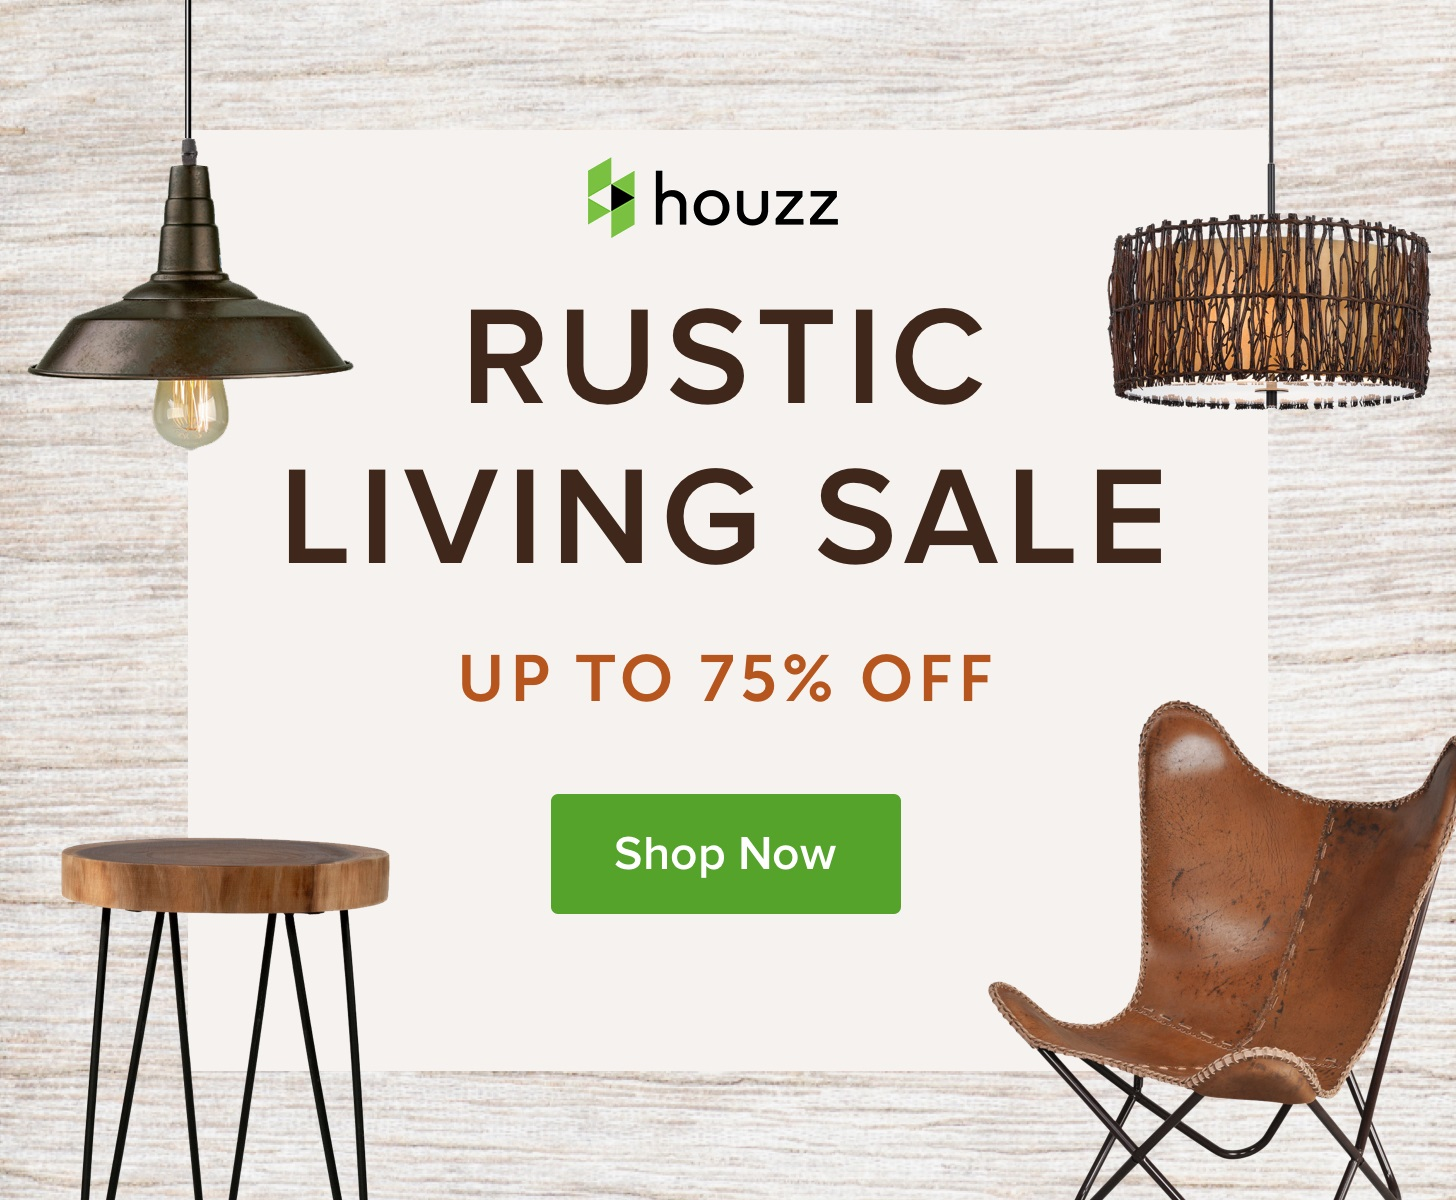 Rustic Living Sale - Up to 75% off at Houzz